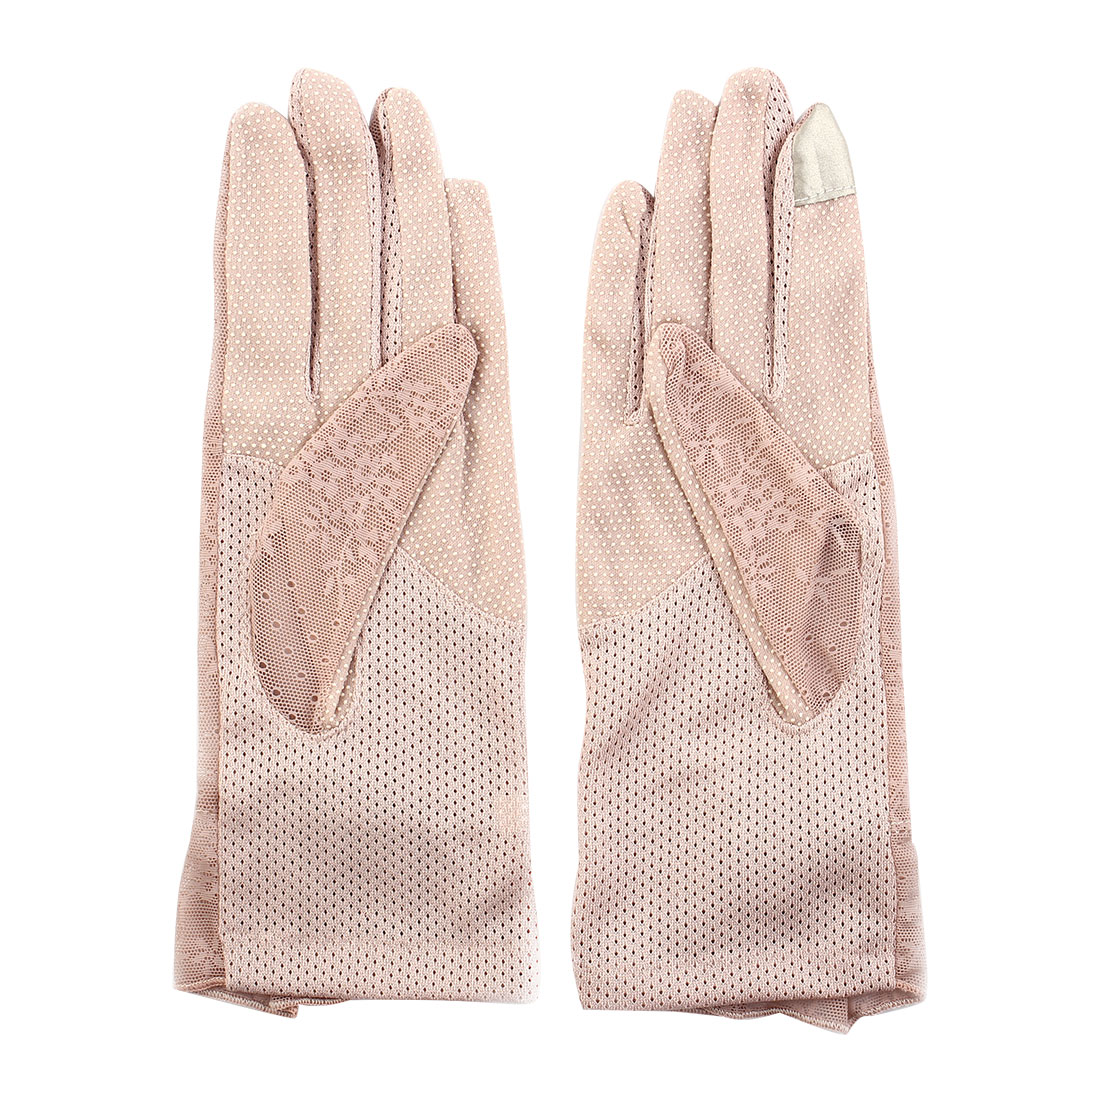 Outdoor Travel Hiking Floral Lace Decor Wrist Length Full Finger Sun Resistant Gloves Pink Pair for Women